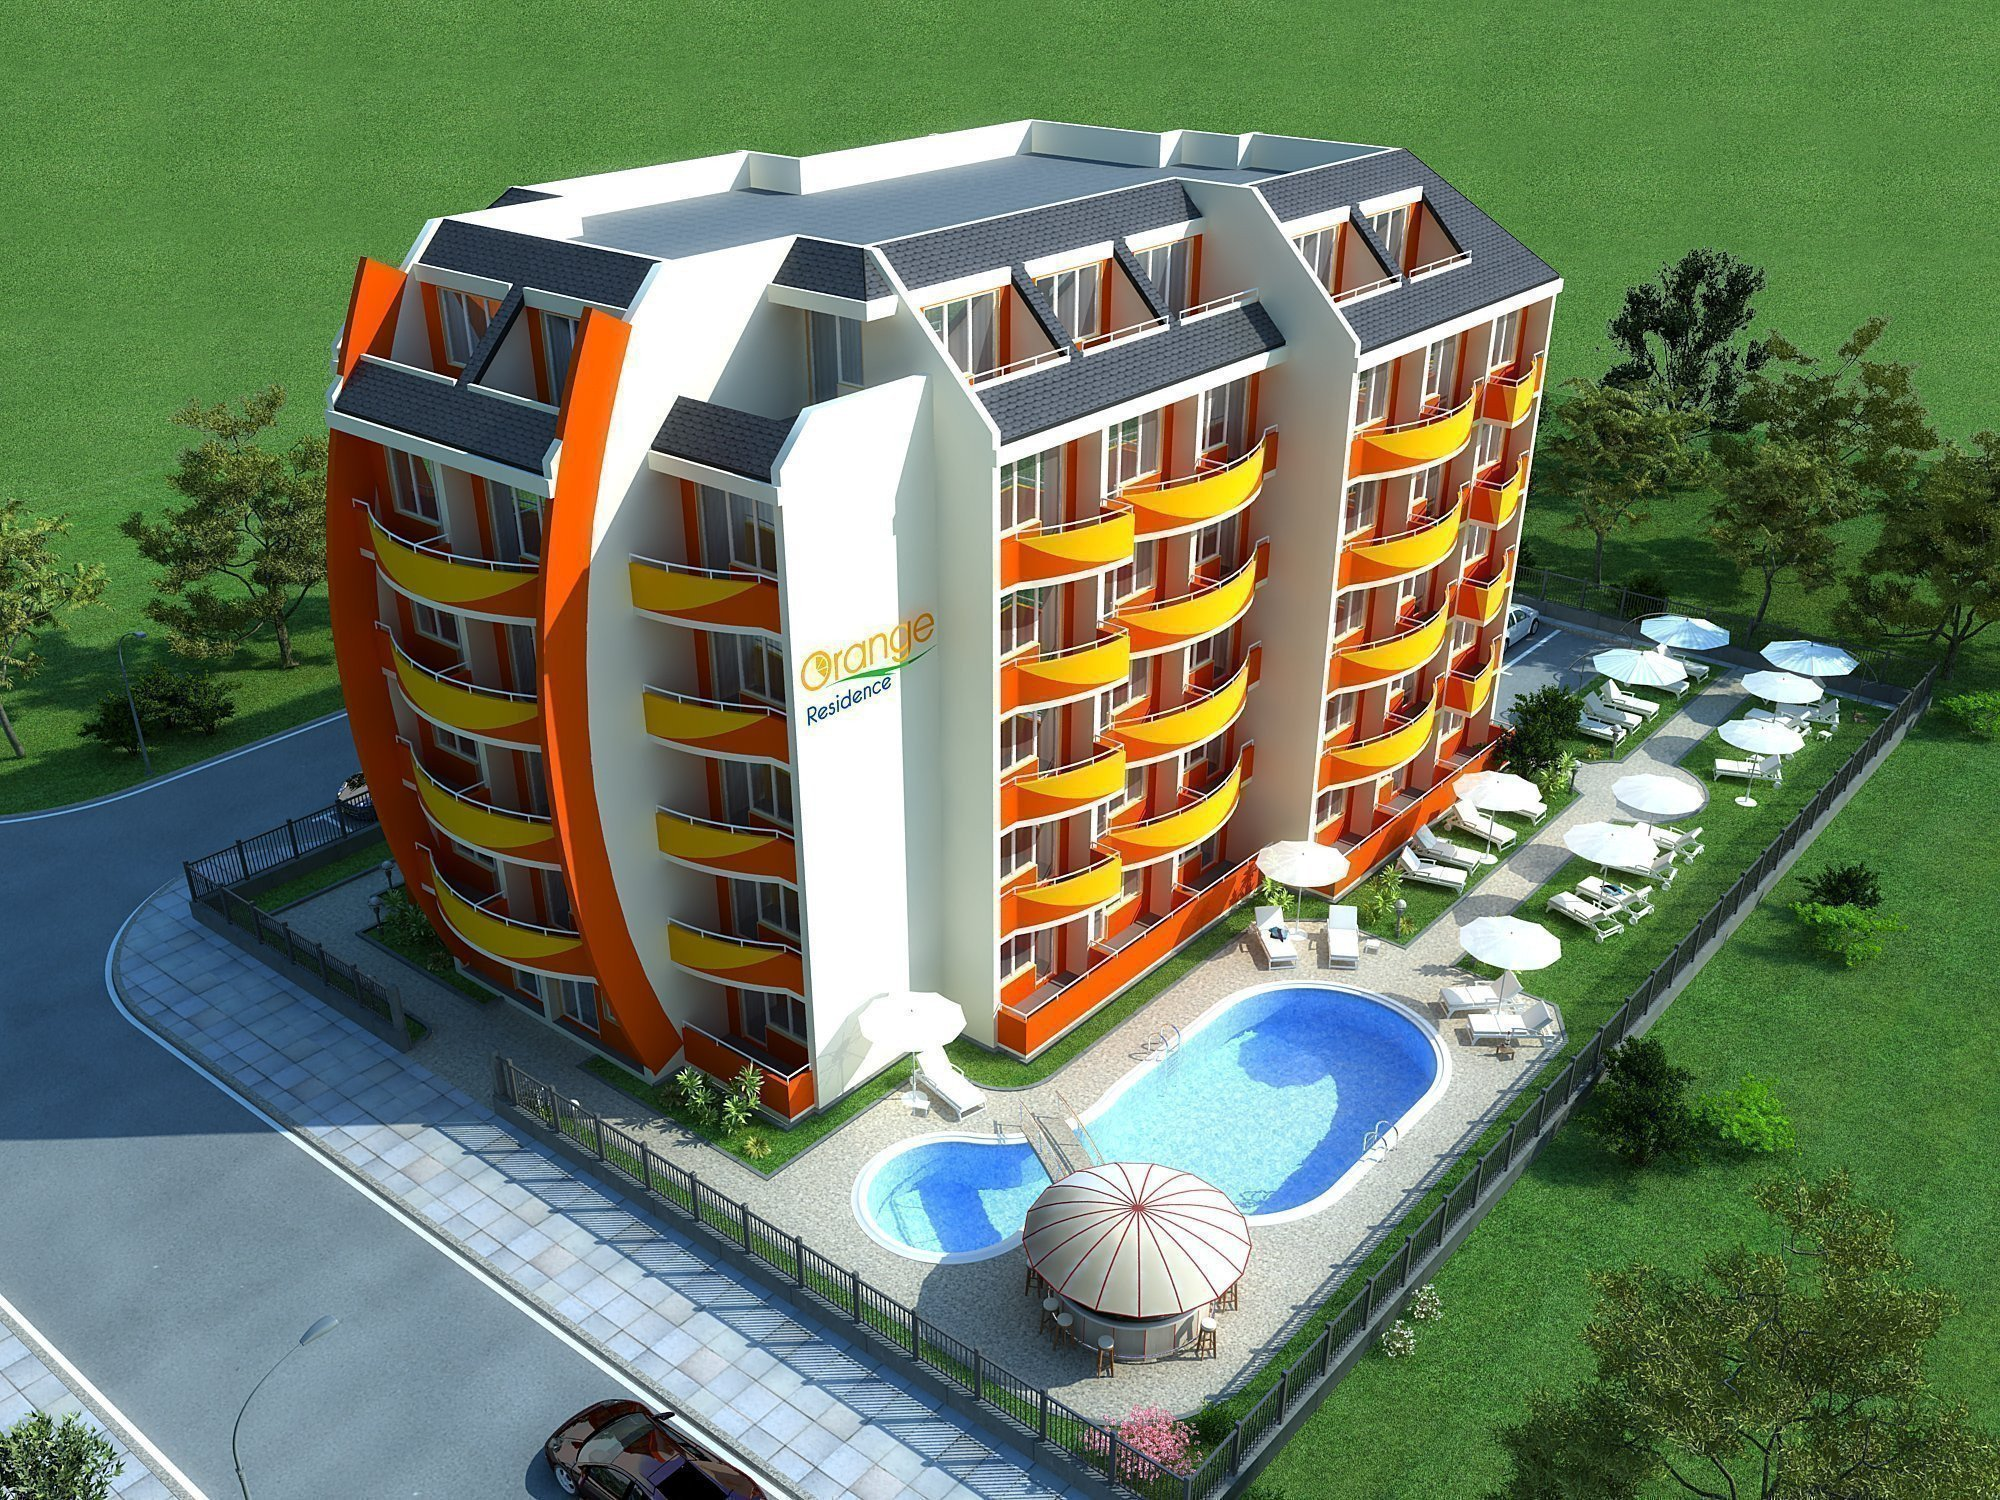 Sale property abroad Studio in Nessebar